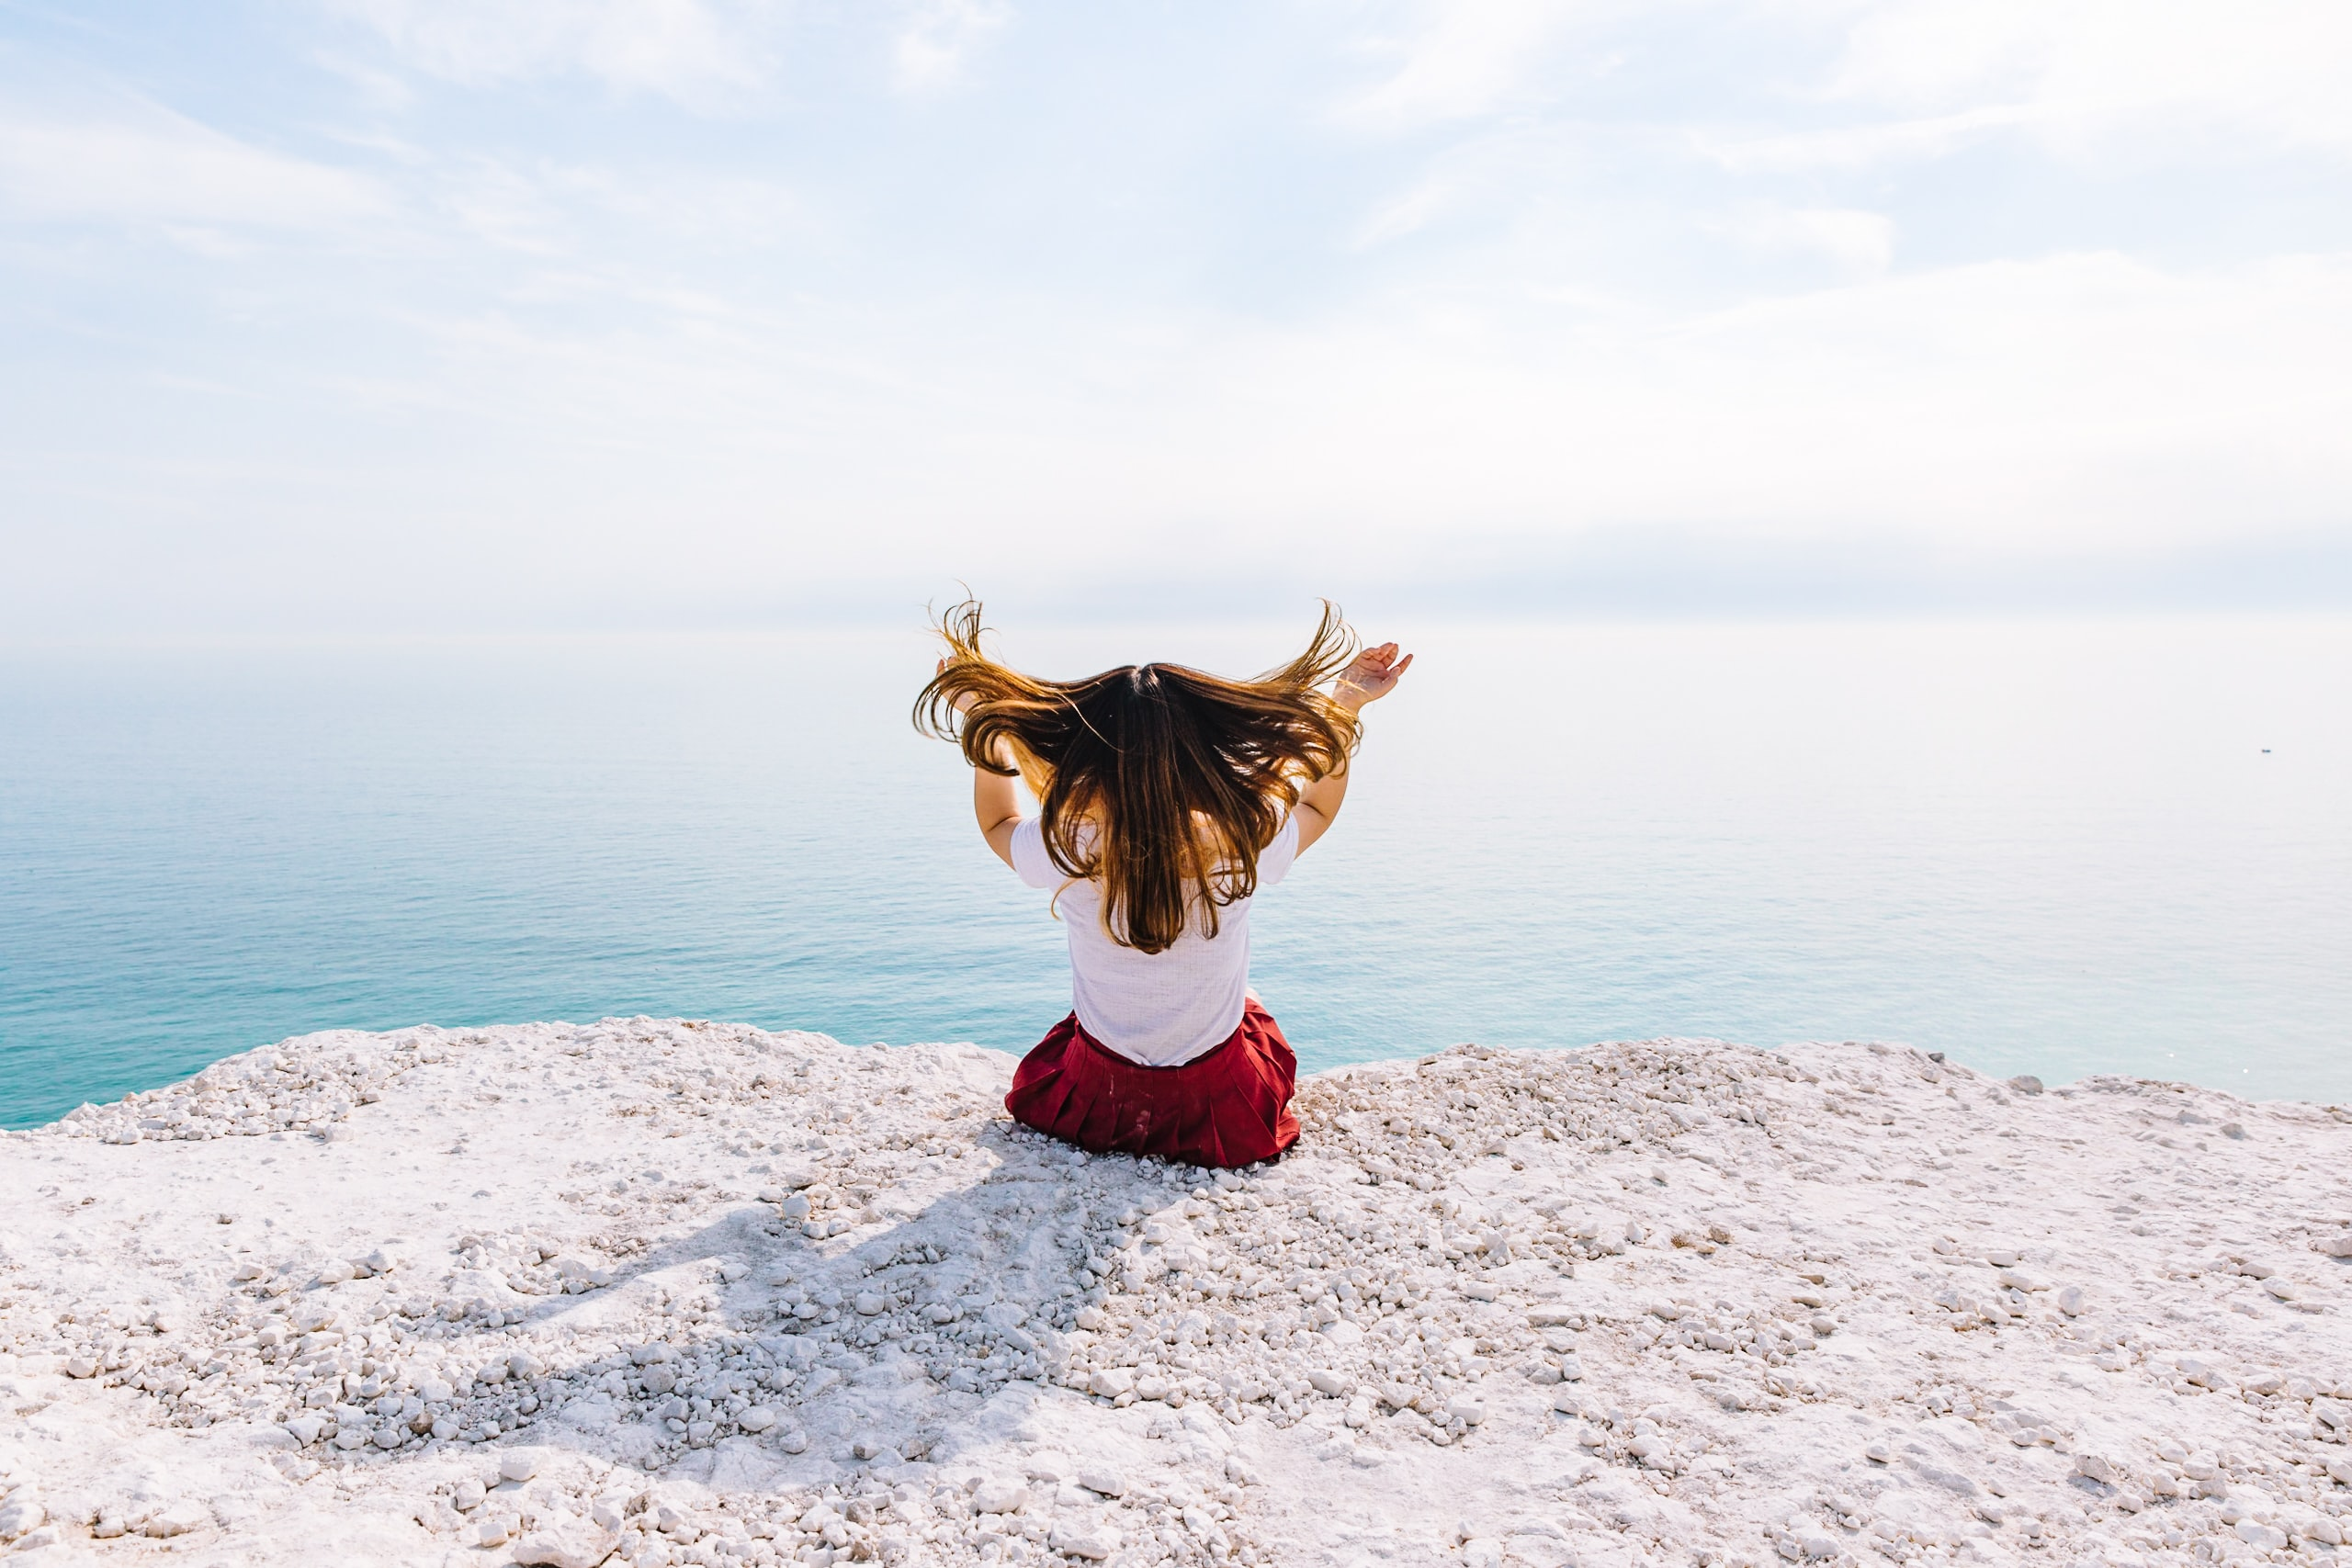 woman sitting on cliff near body of water